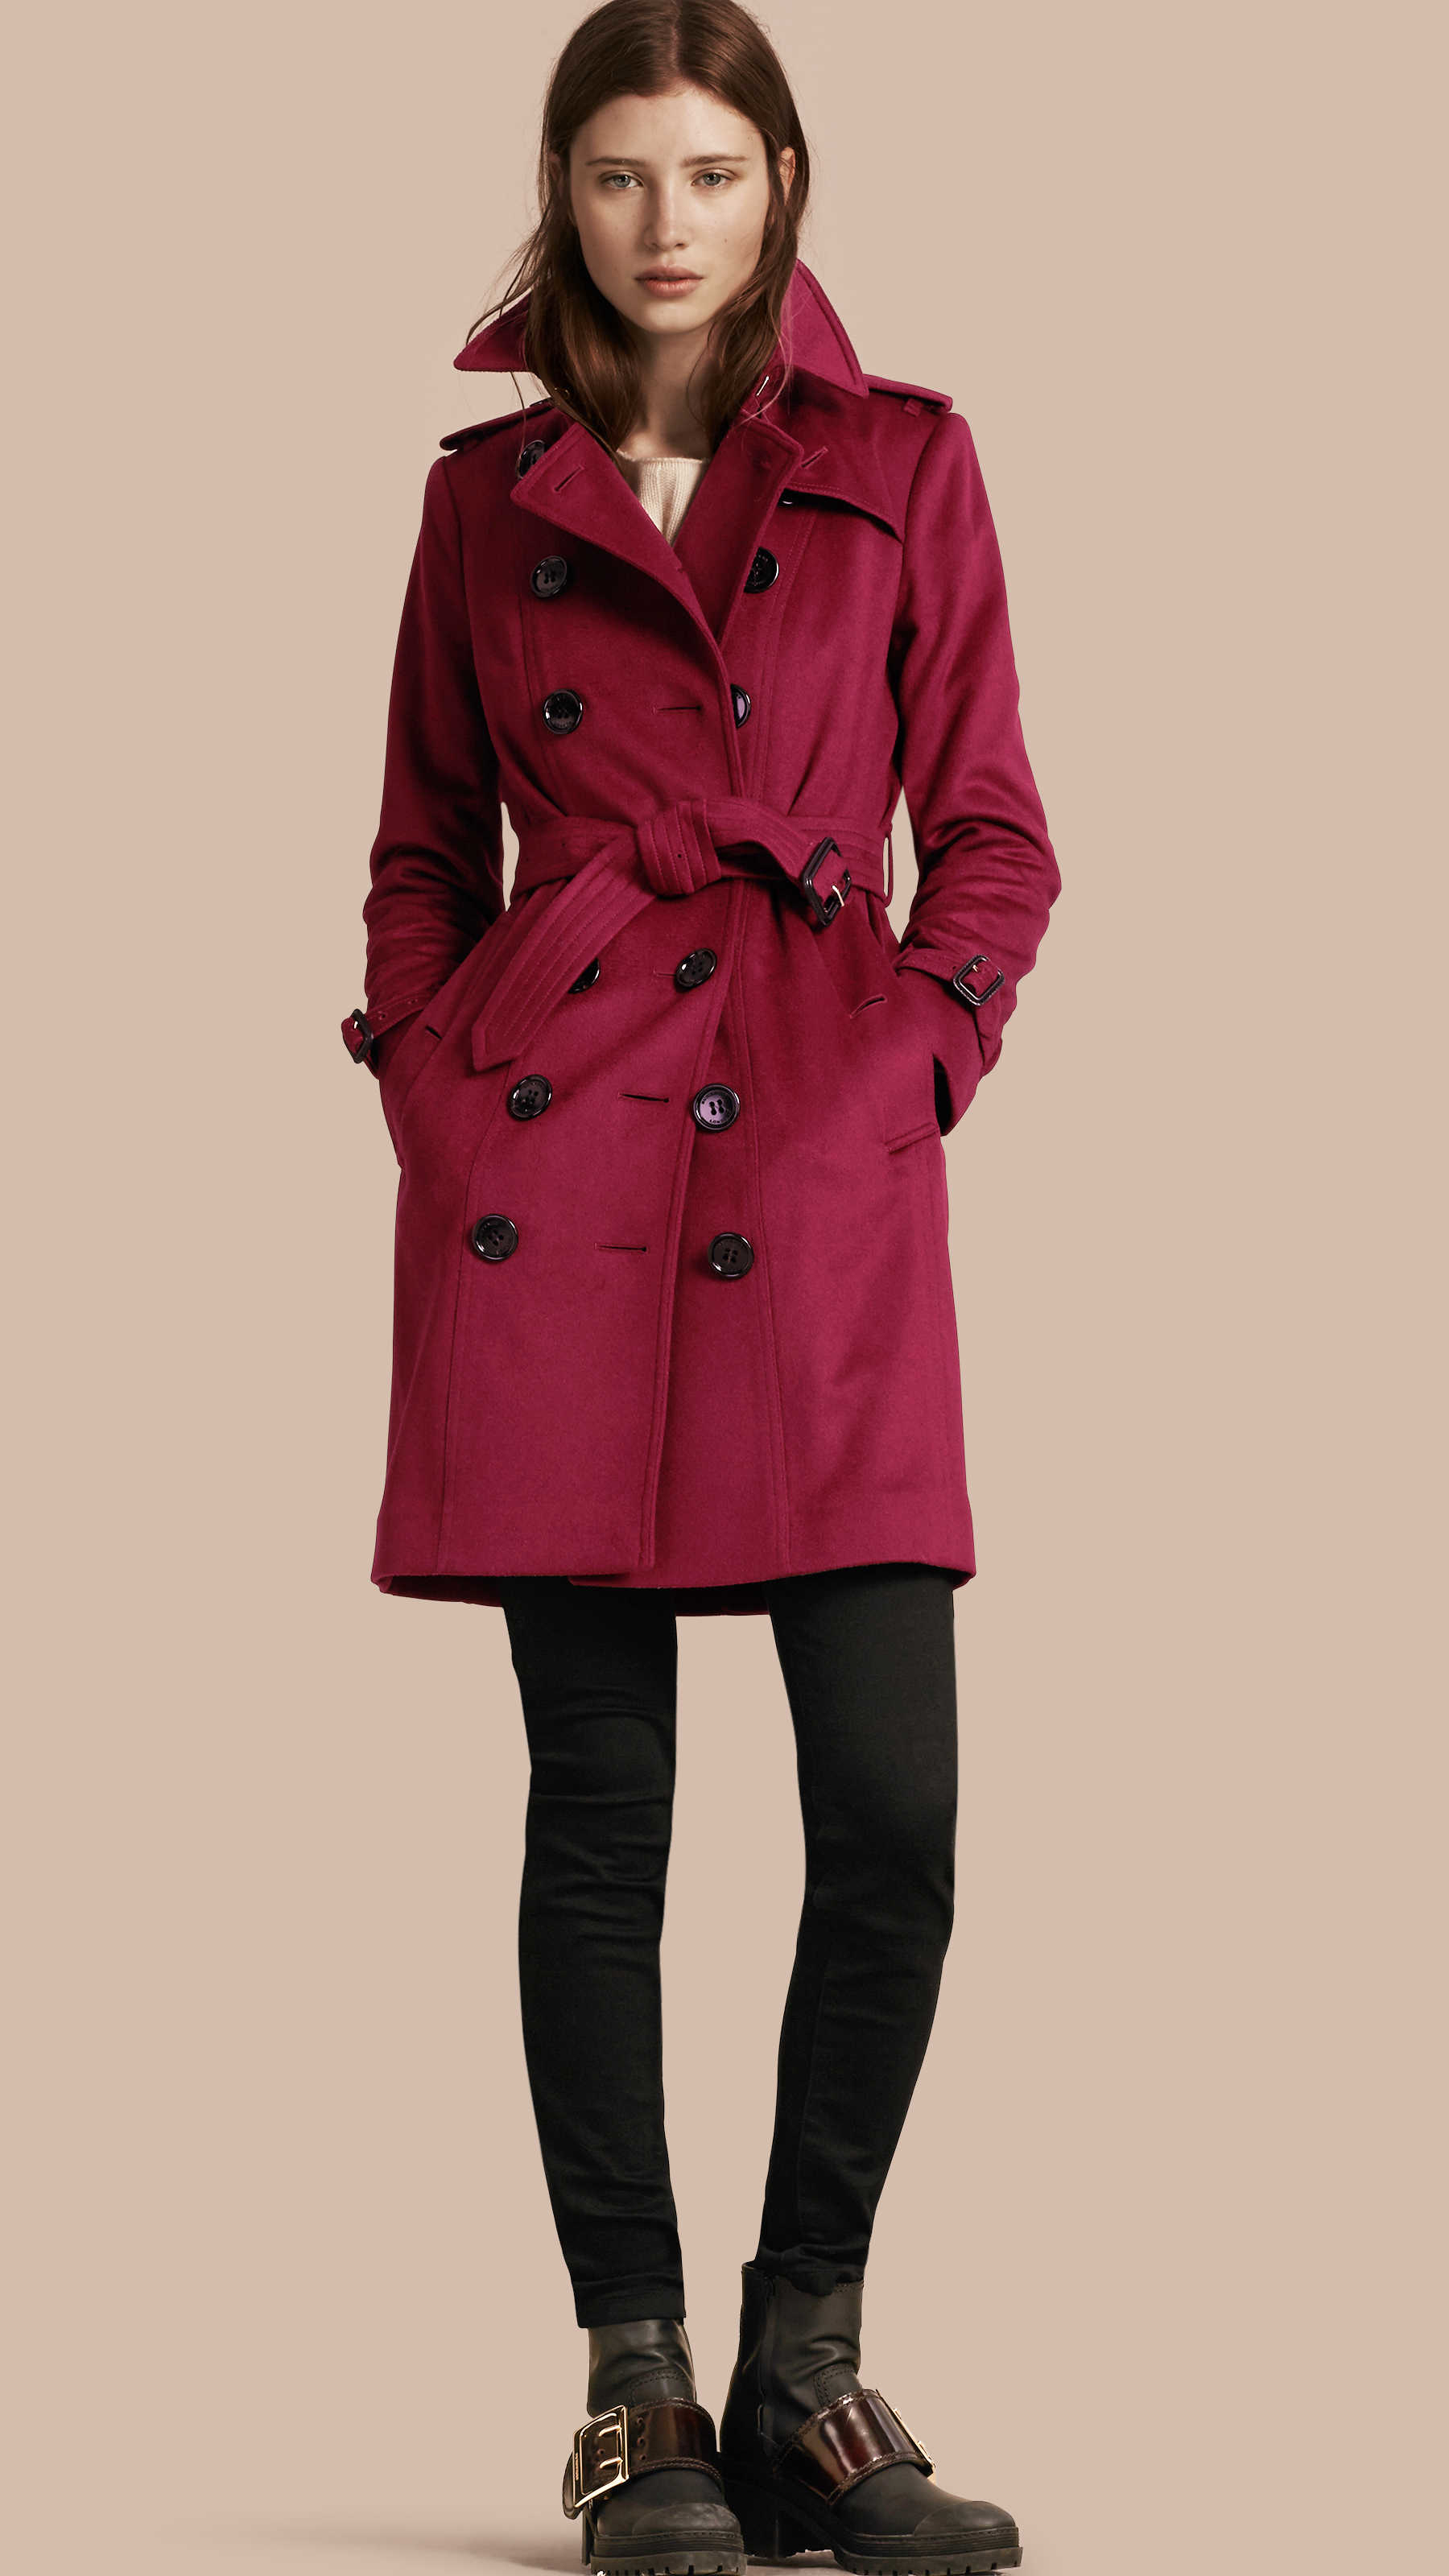 e38a392dba96 Lyst - Burberry Sandringham Fit Cashmere Trench Coat Cherry Pink in Red